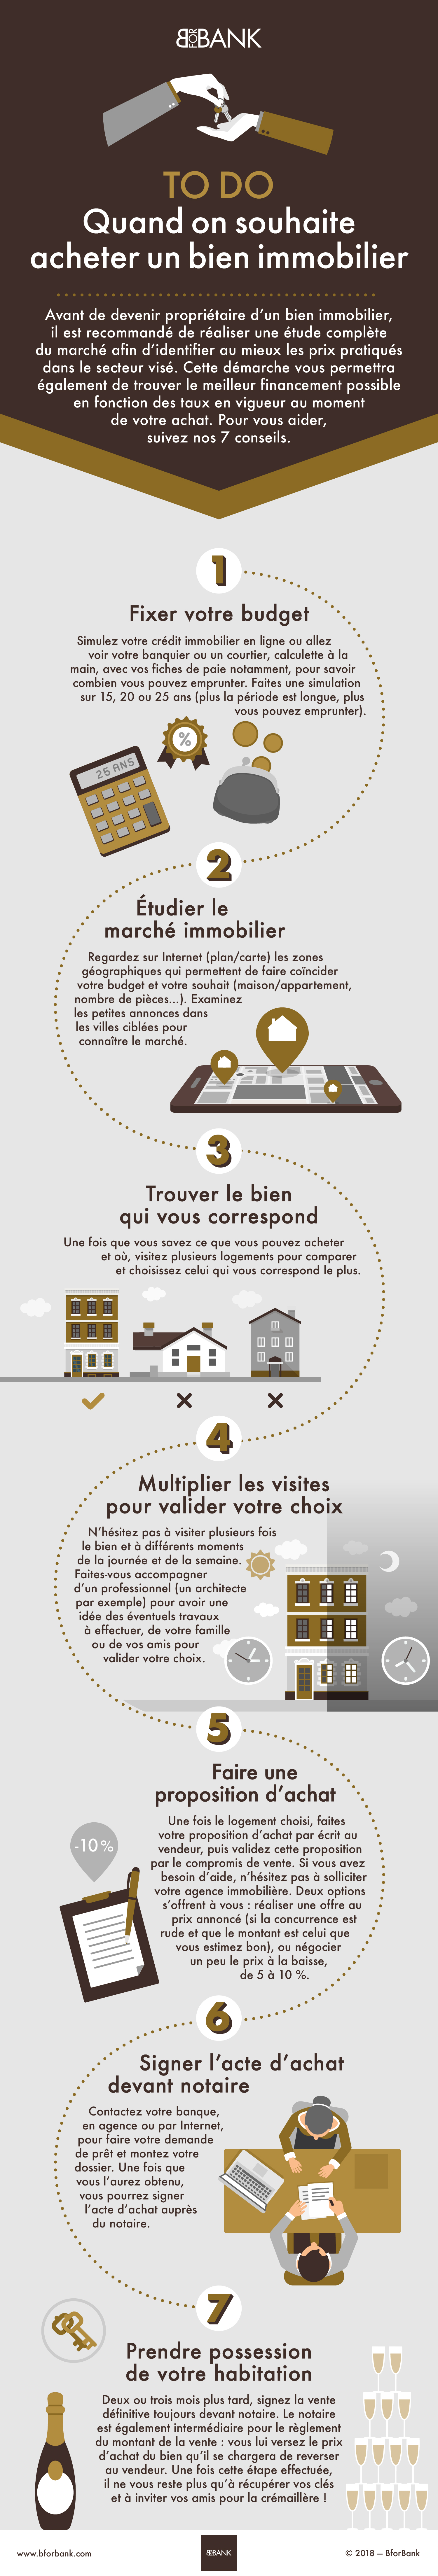 To do crédit immobilier